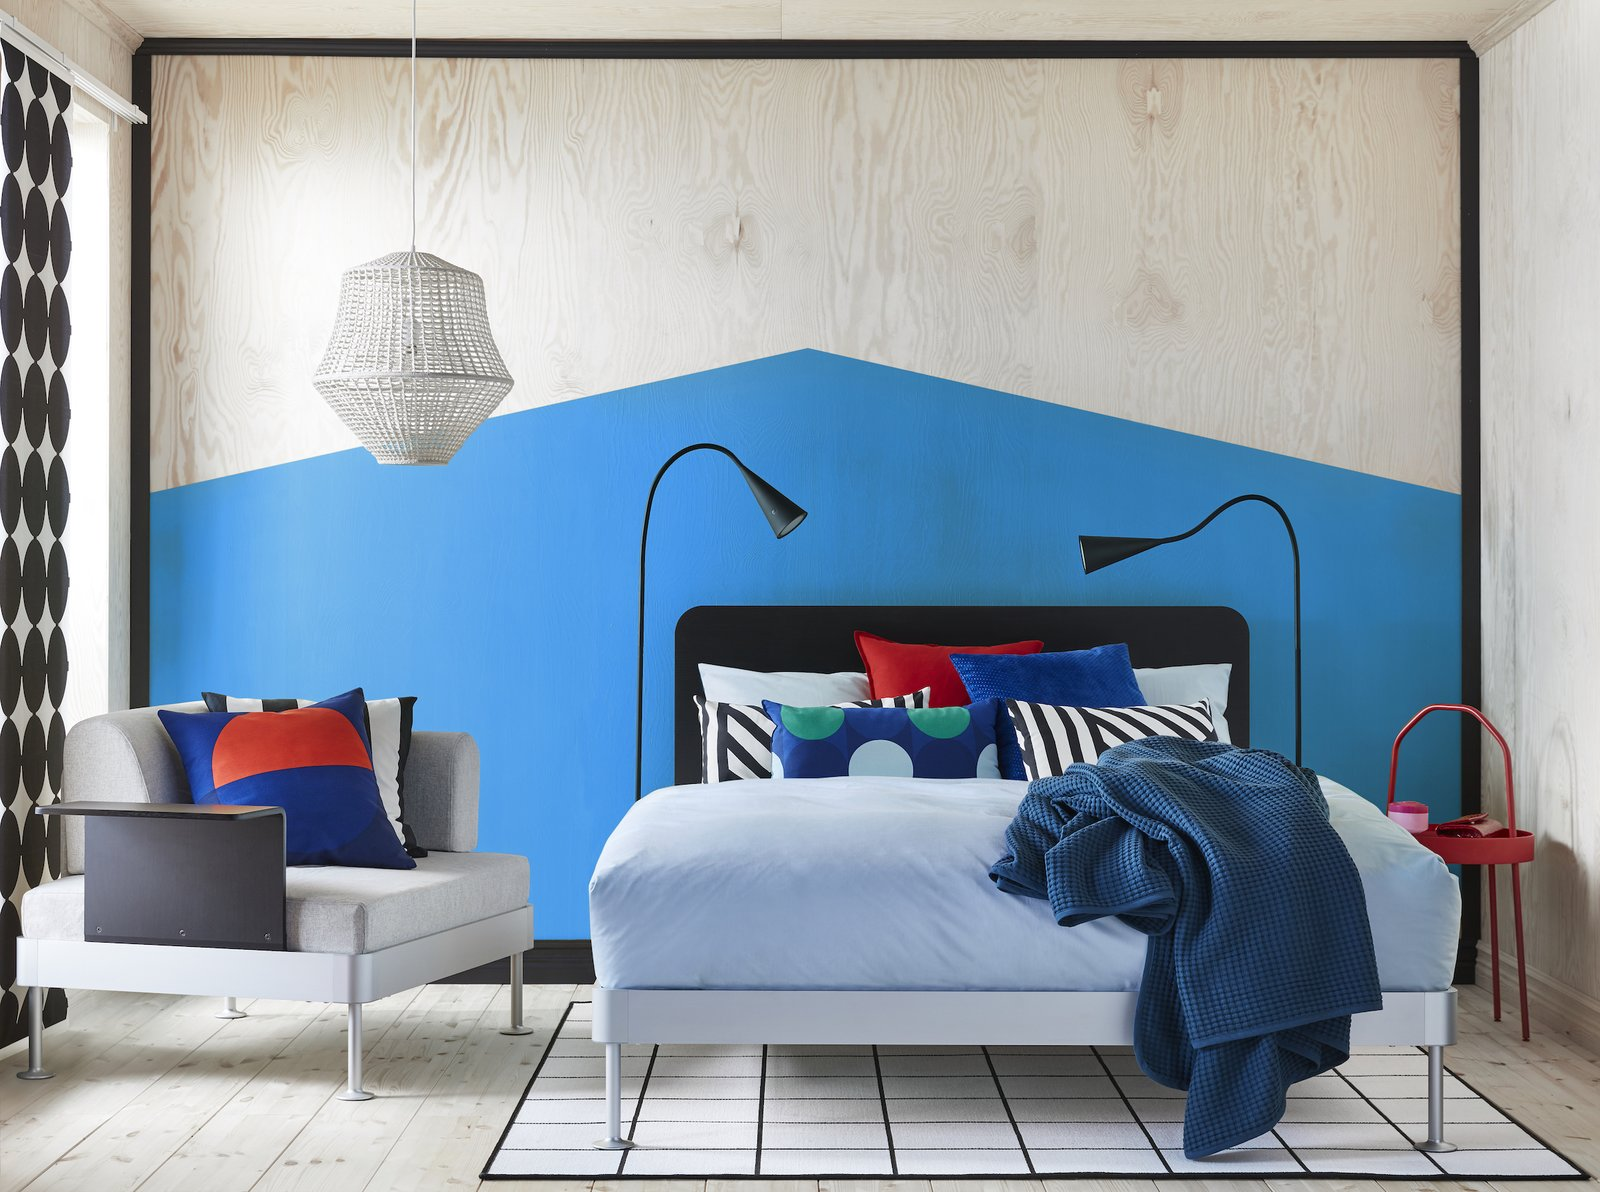 tom dixon 39 s latest ikea collaboration is a hackable bed forrest ballou. Black Bedroom Furniture Sets. Home Design Ideas